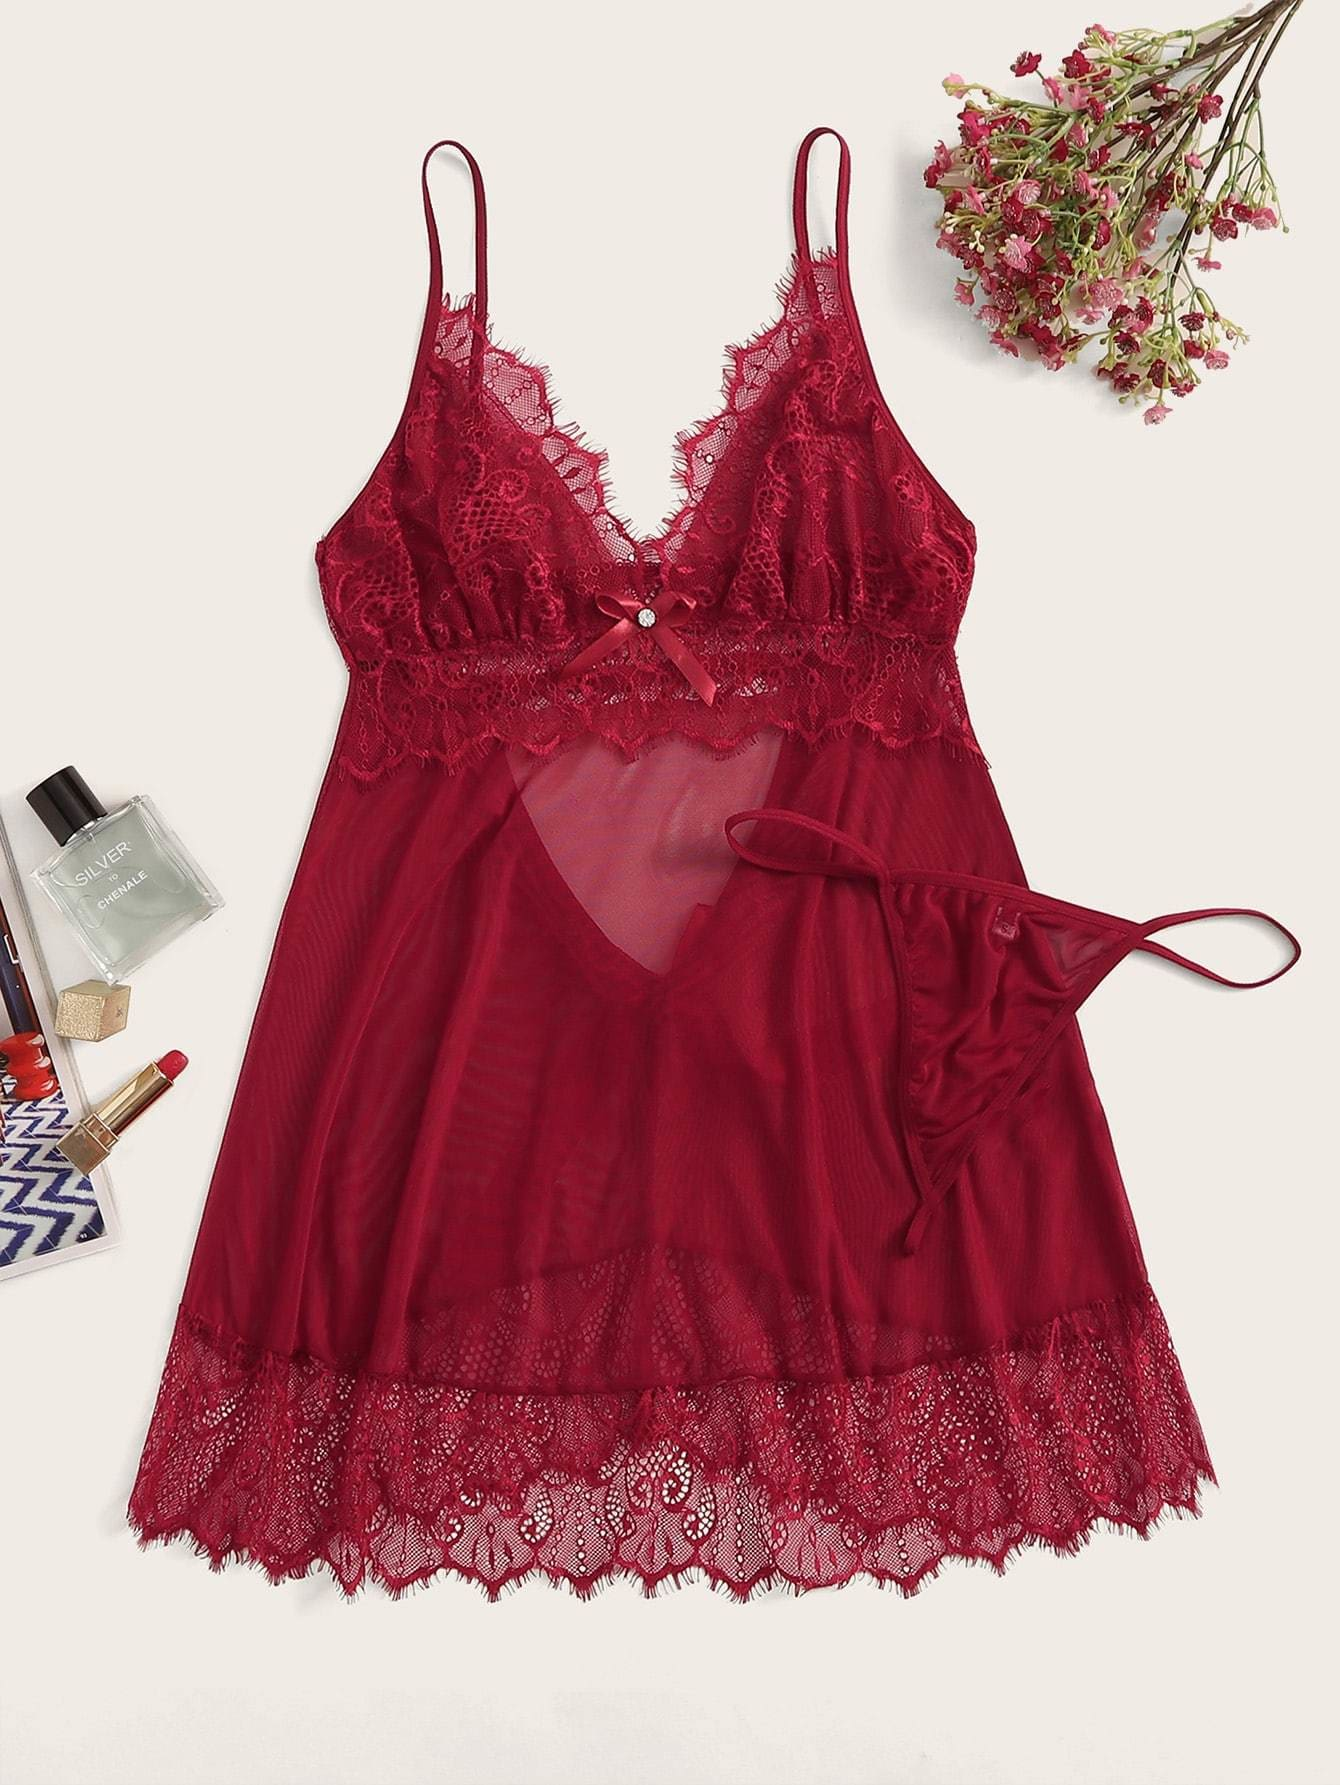 Floral Lace Cutout Slips With Thong - S / Burgundy - Nightwears